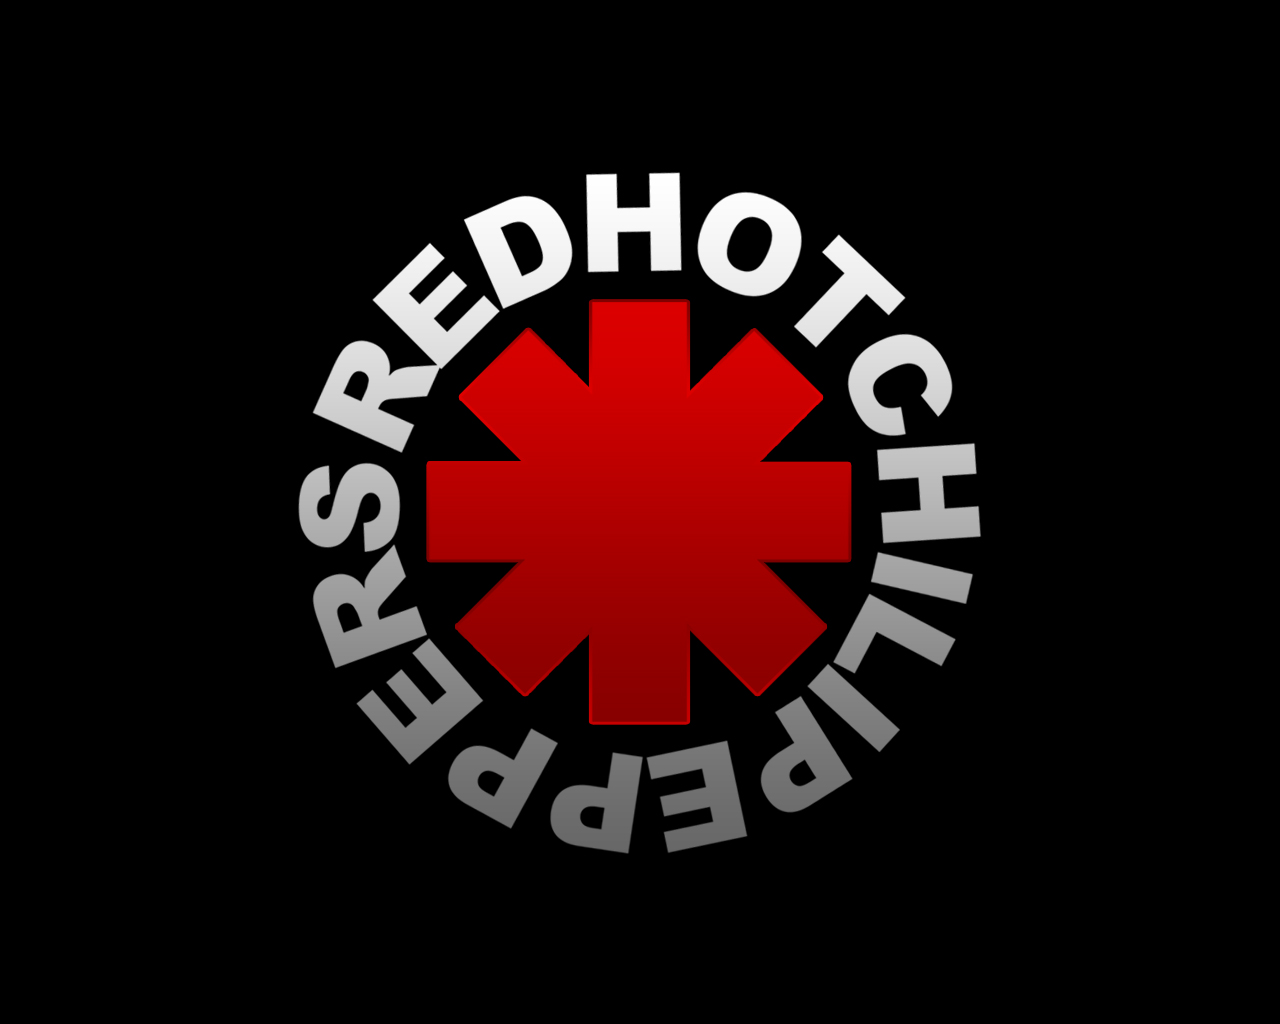 Red Hot Chili Peppers Logos